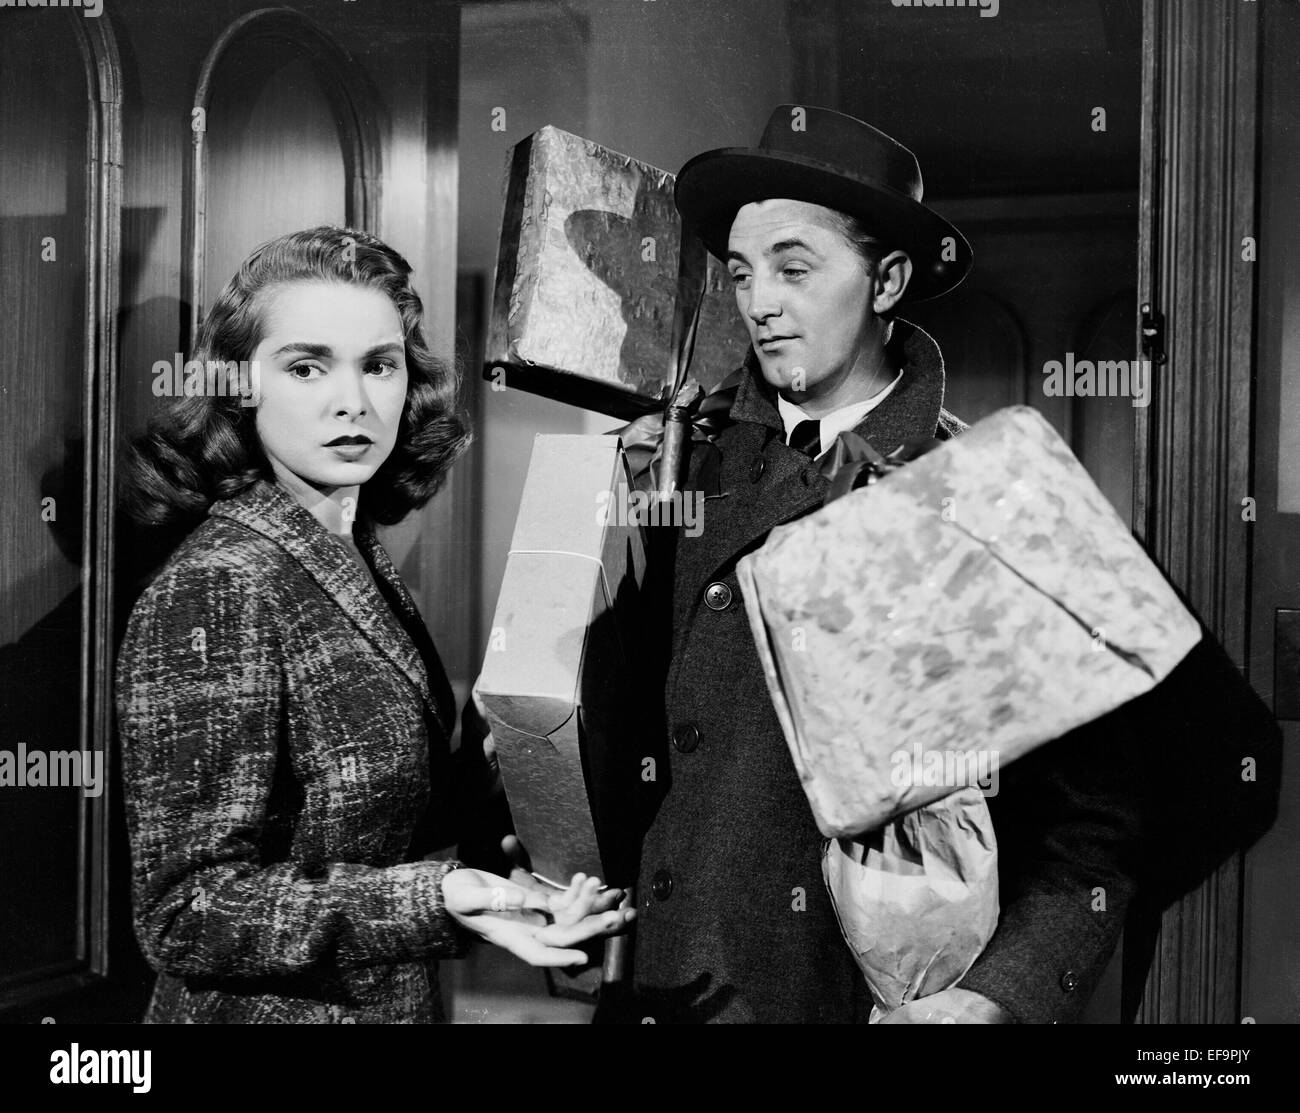 Janet leigh robert mitchum holiday affair 1949 stock for Classic christmas films black and white